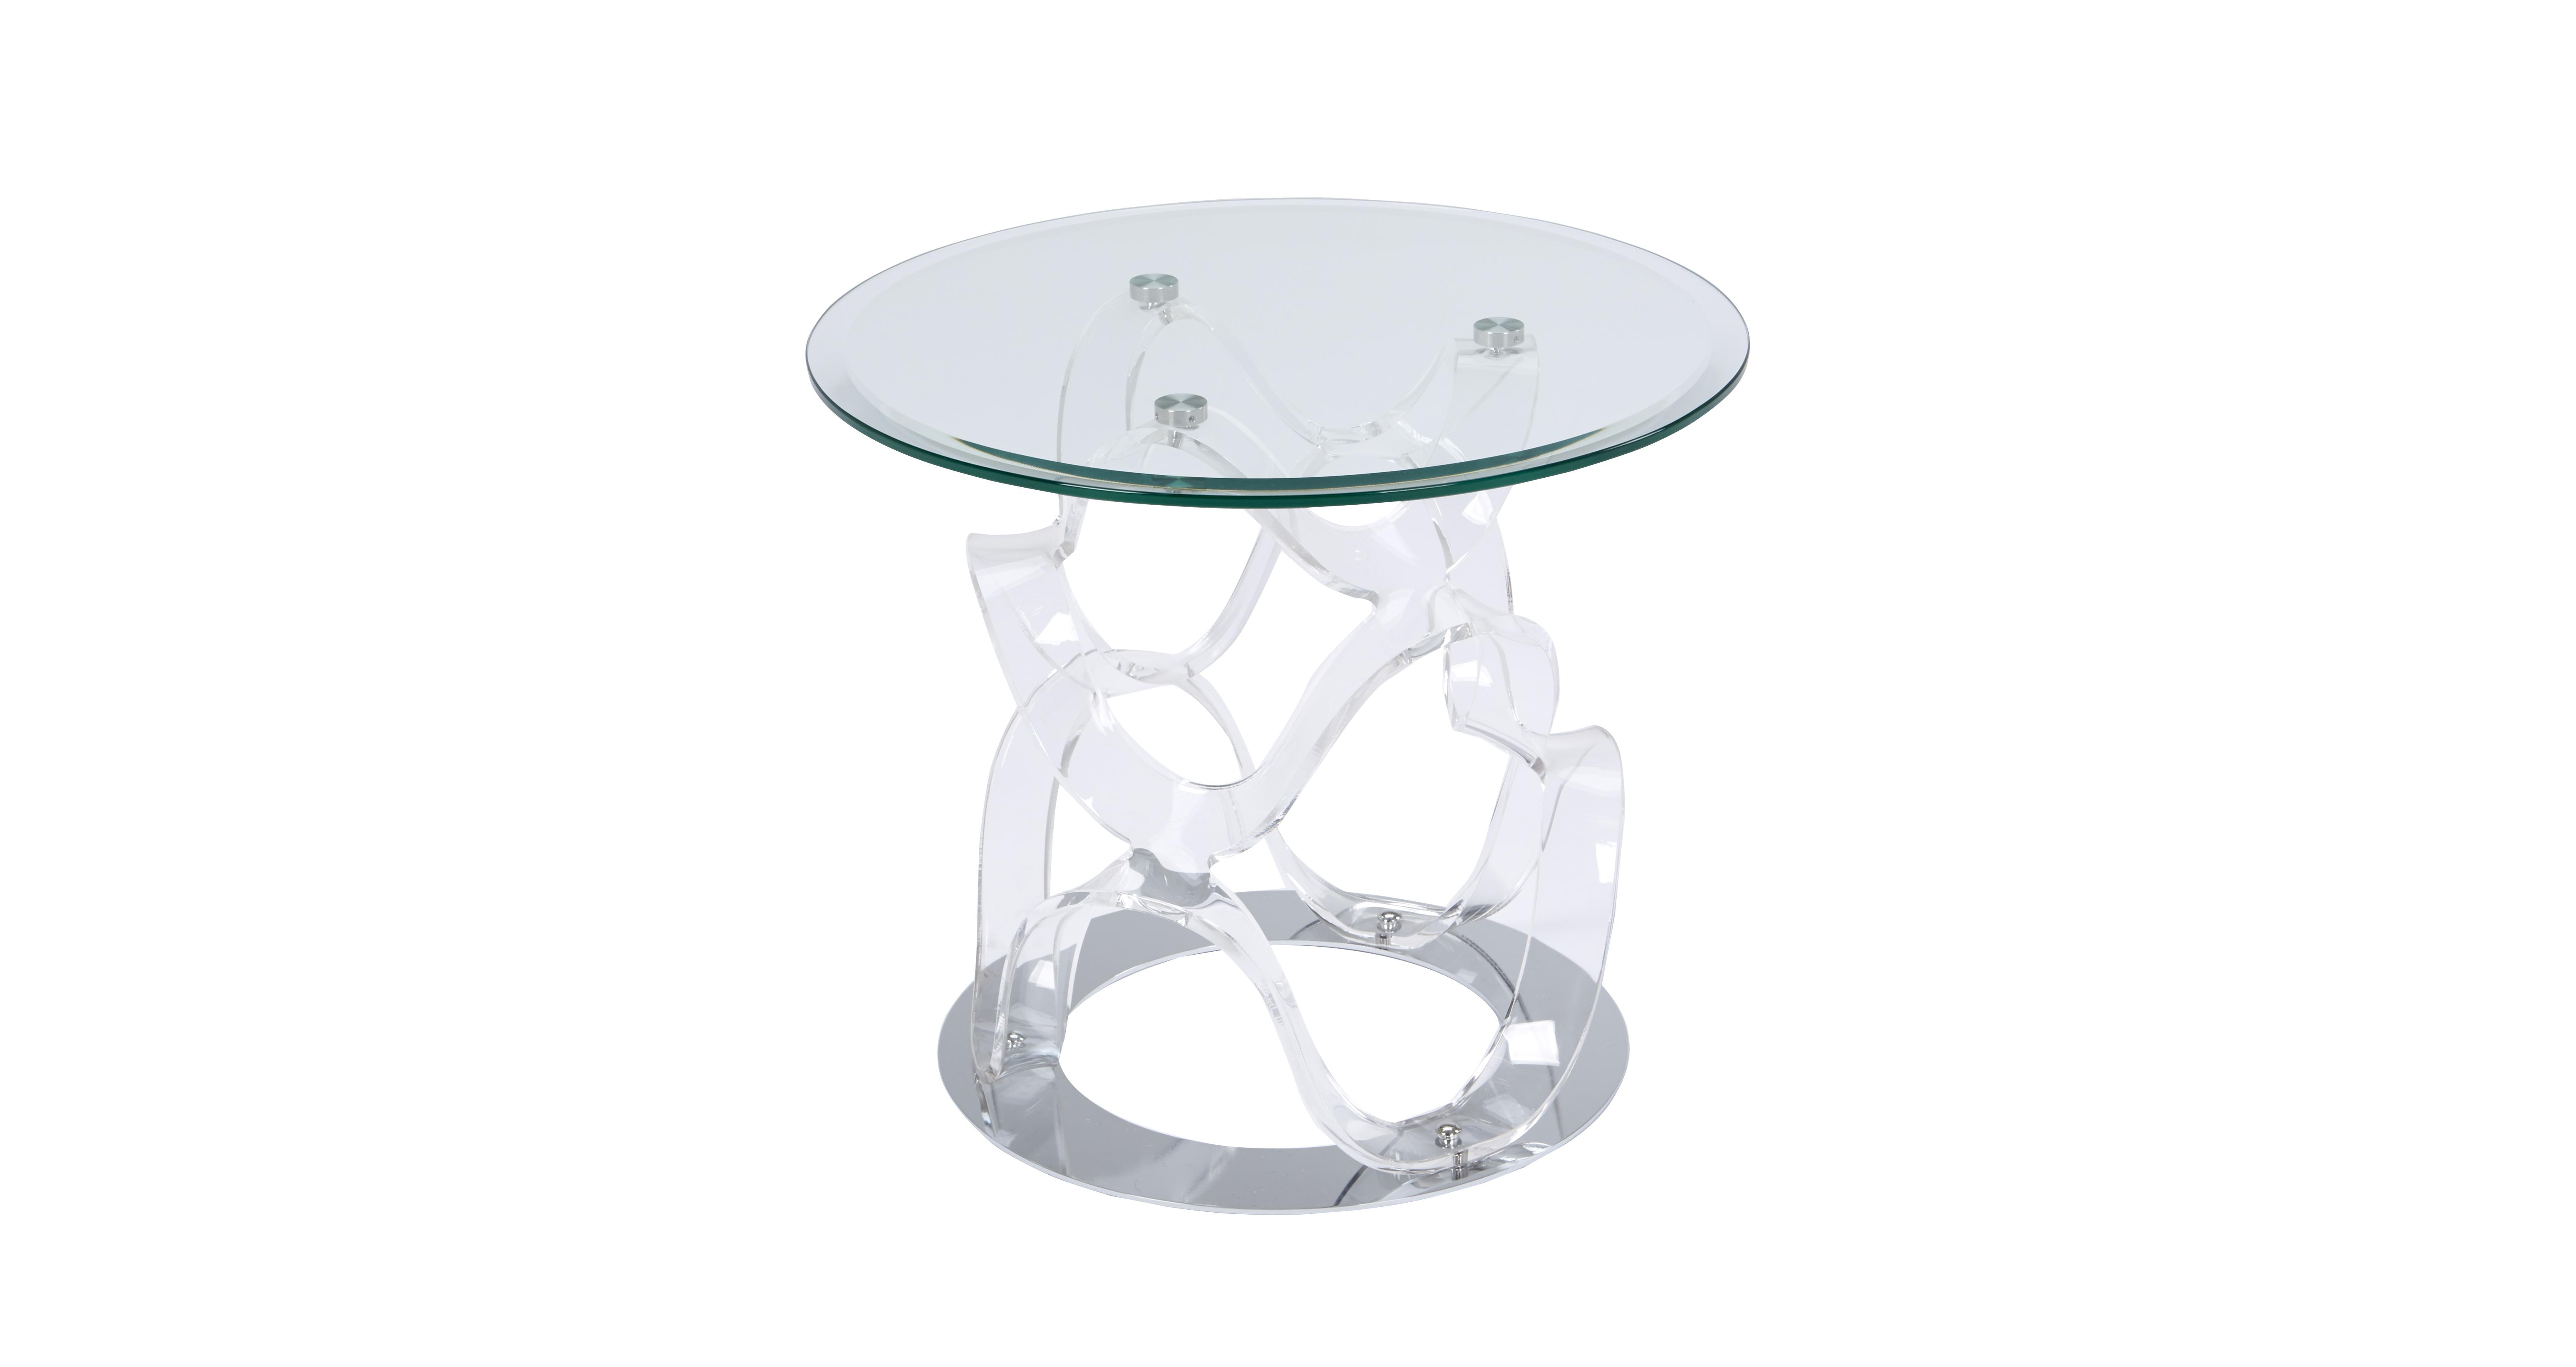 Wave lamp table dfs for Lamp table dfs